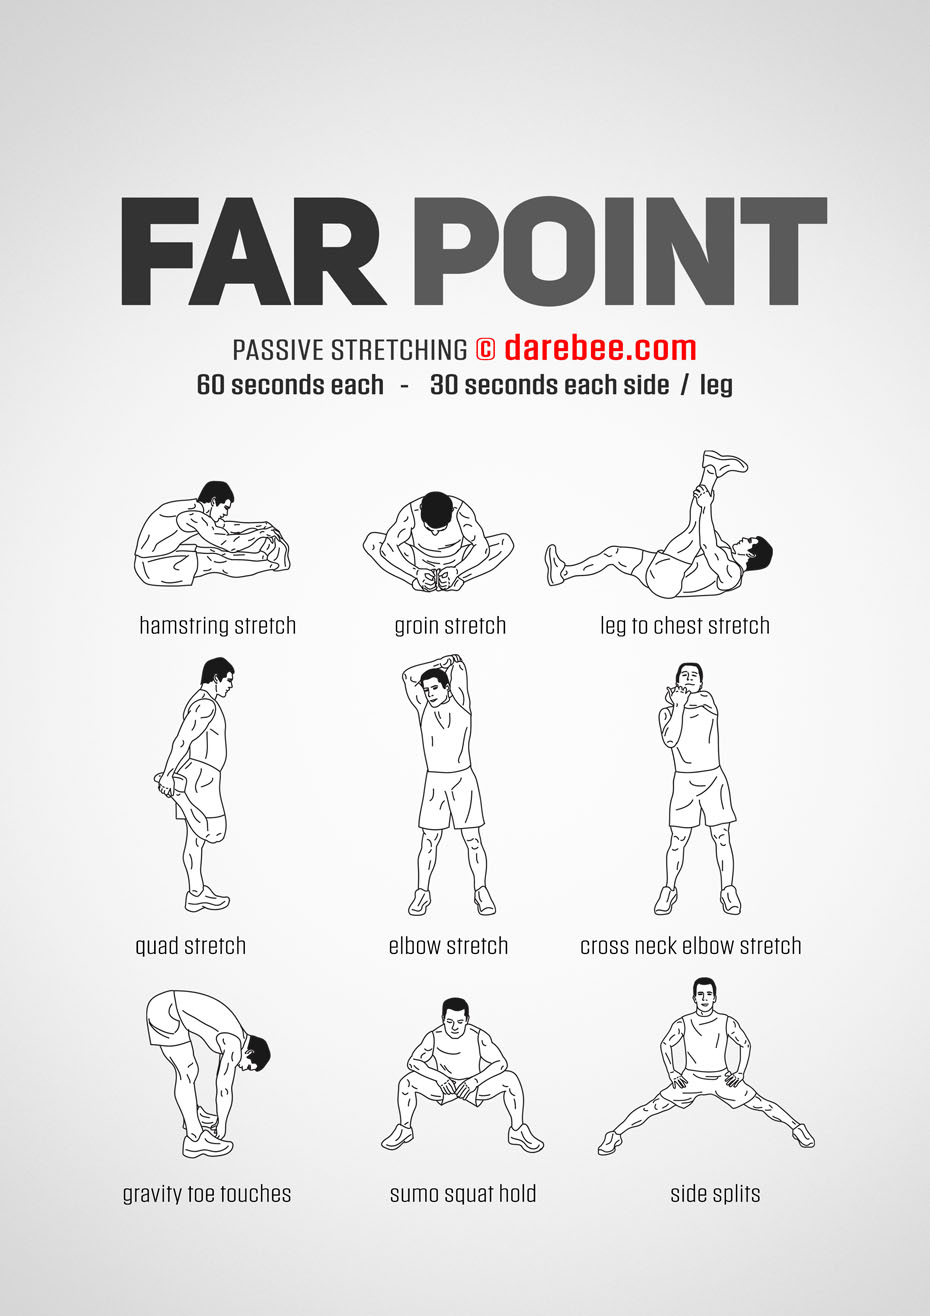 Farpoint Workout